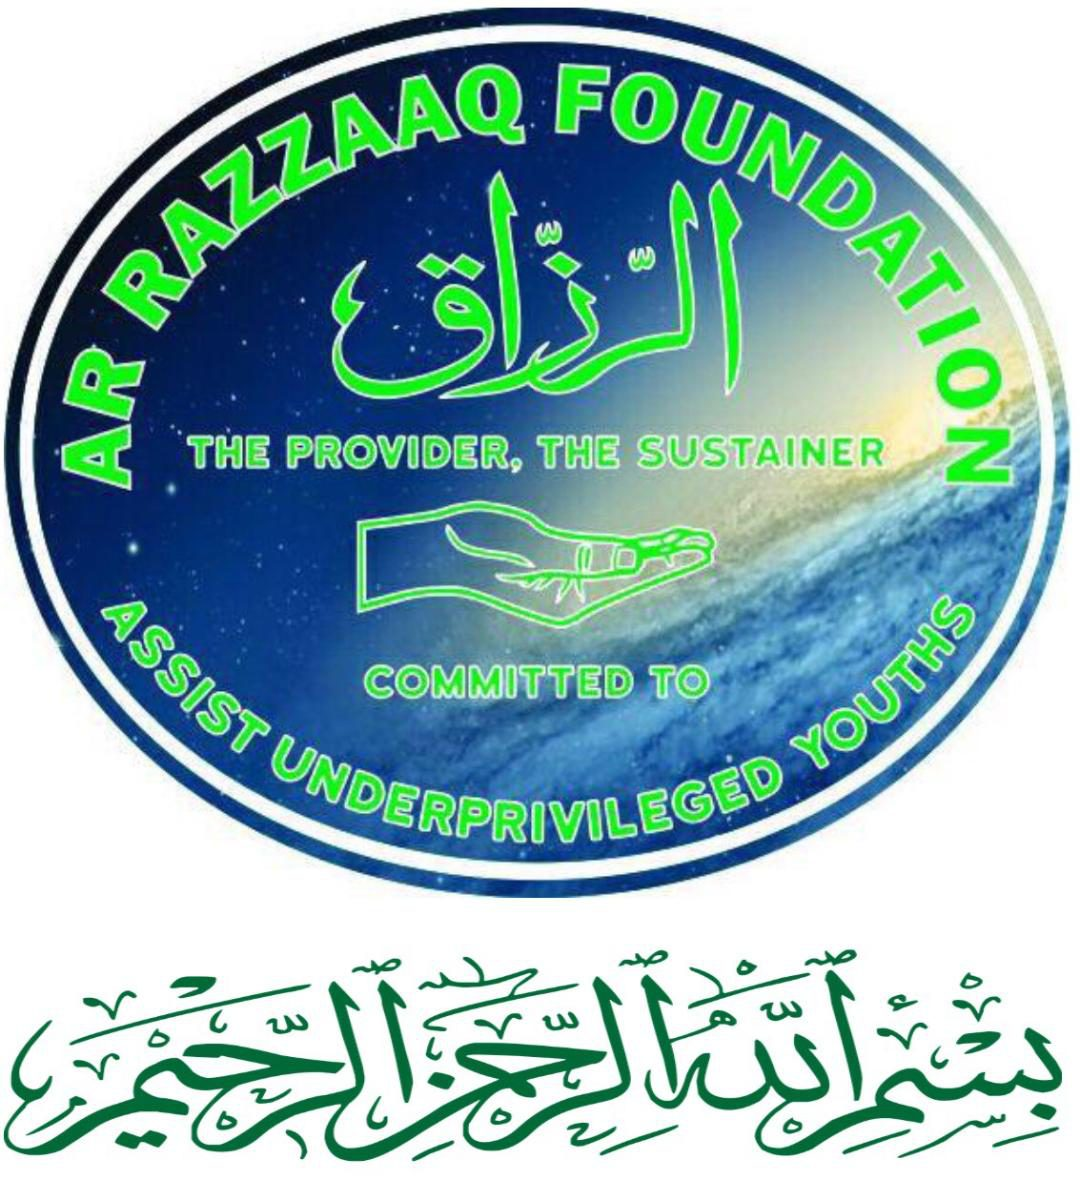 AR RAZZAAQ FOUNDATION